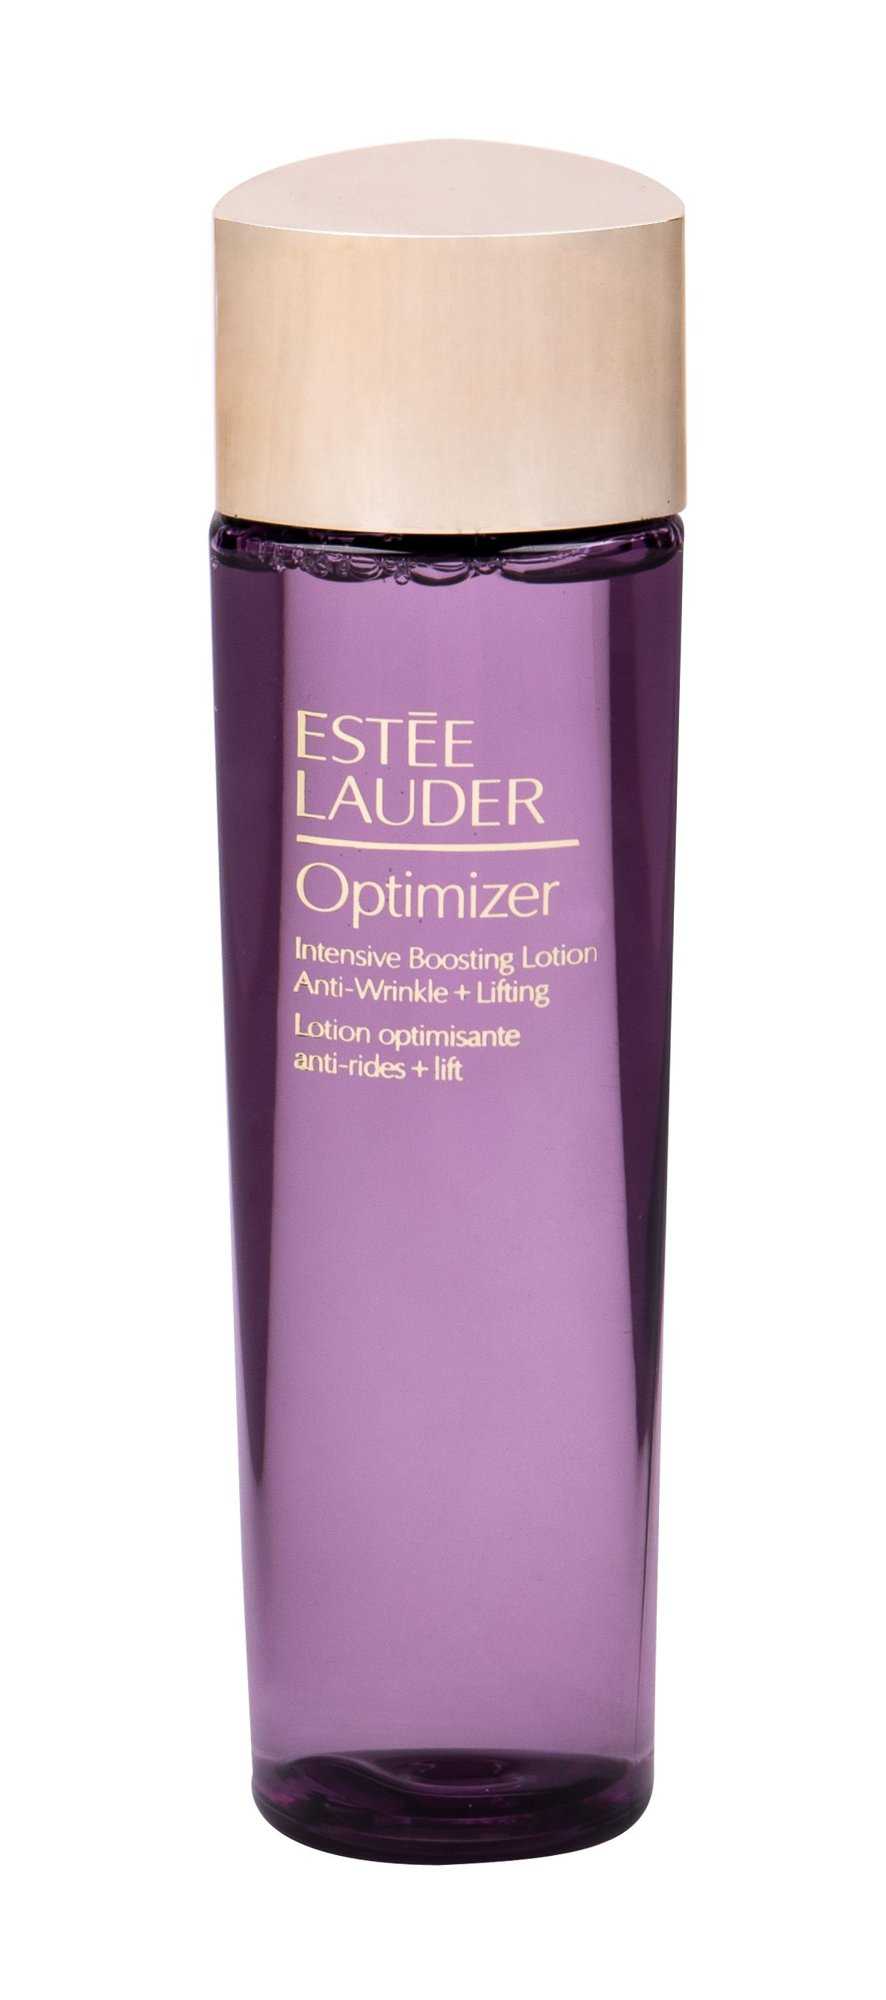 Estée Lauder Optimizer Facial Lotion and Spray 200ml